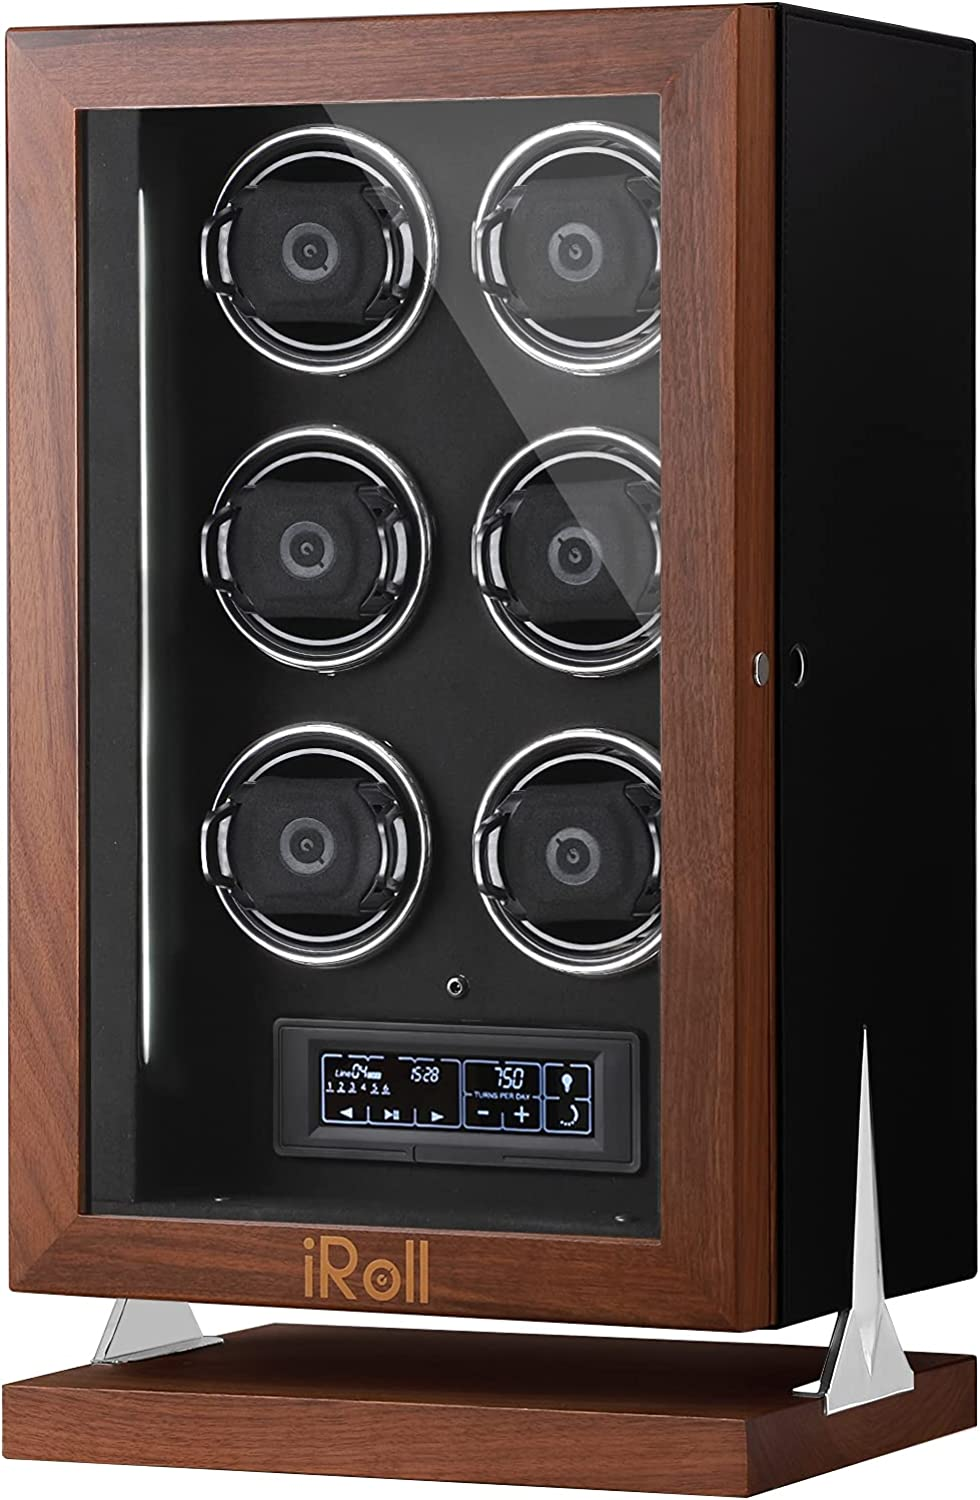 Popular overseas iRoll Watch Winder for Discount mail order 4 6 J Ultra-Quiet 12 Automatic with